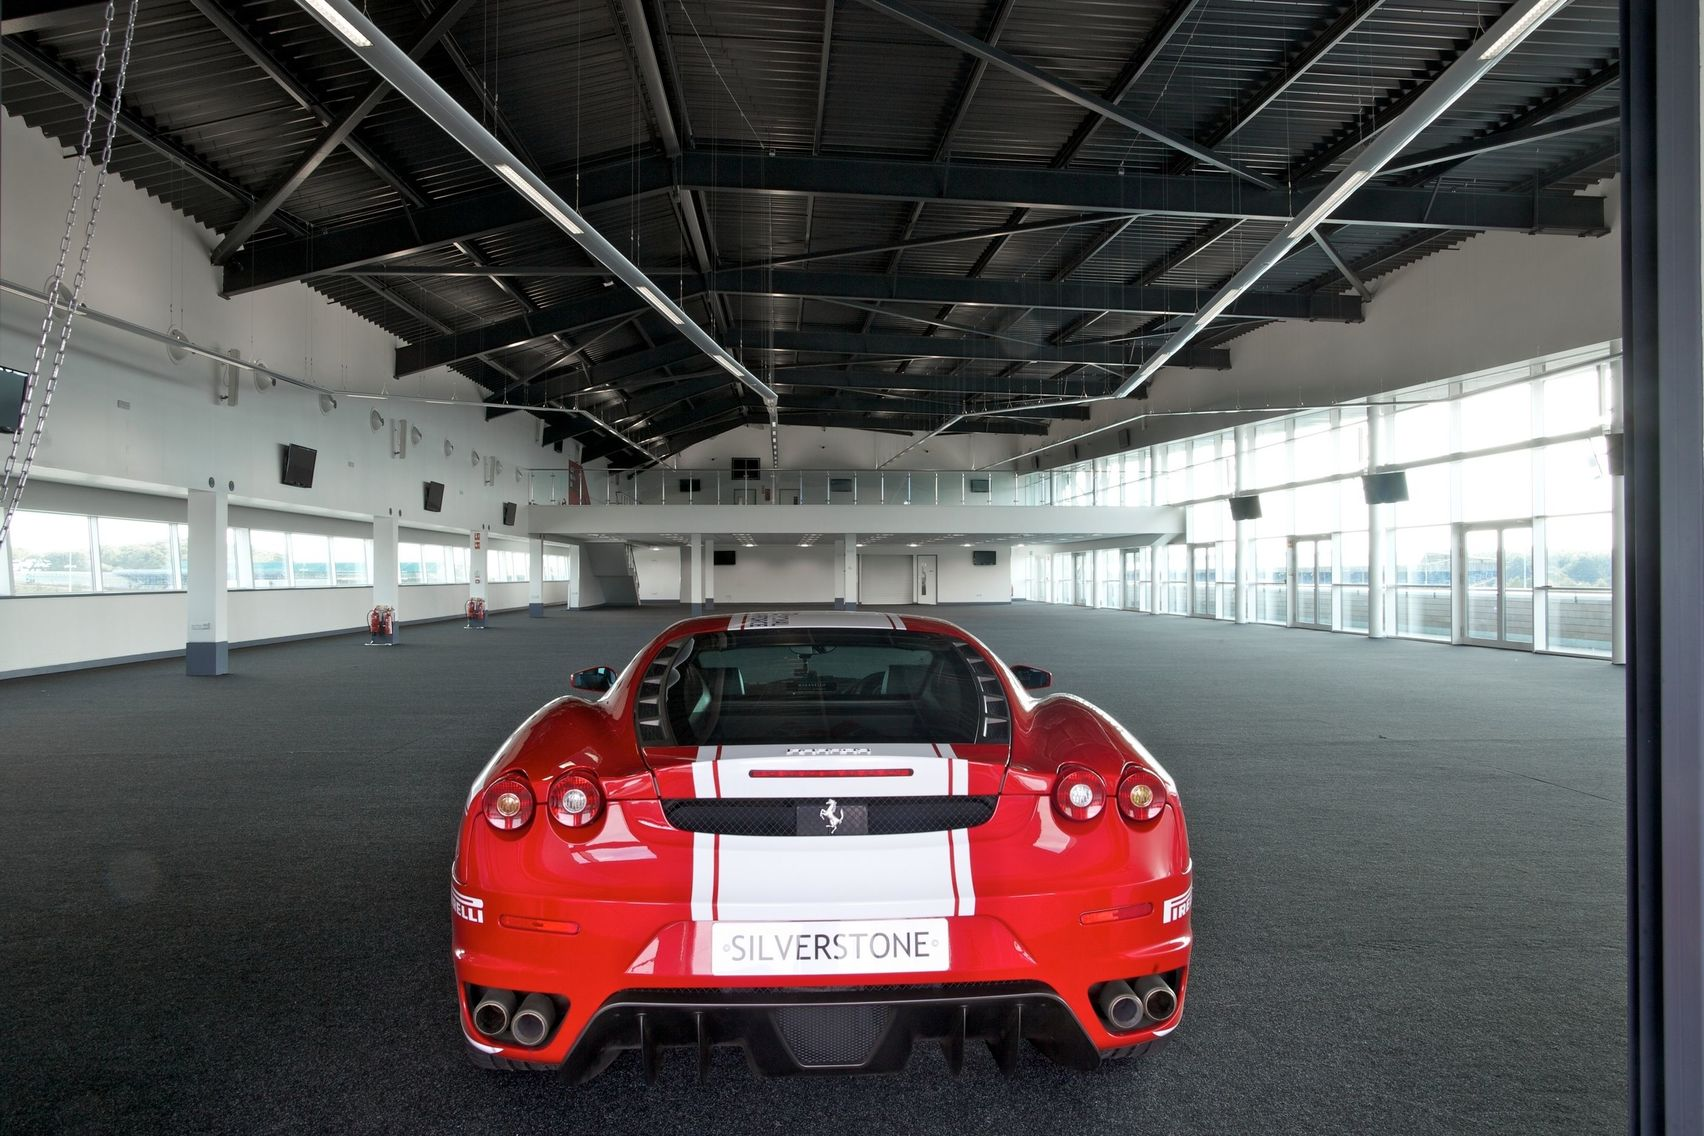 Hall 1, Silverstone Wing